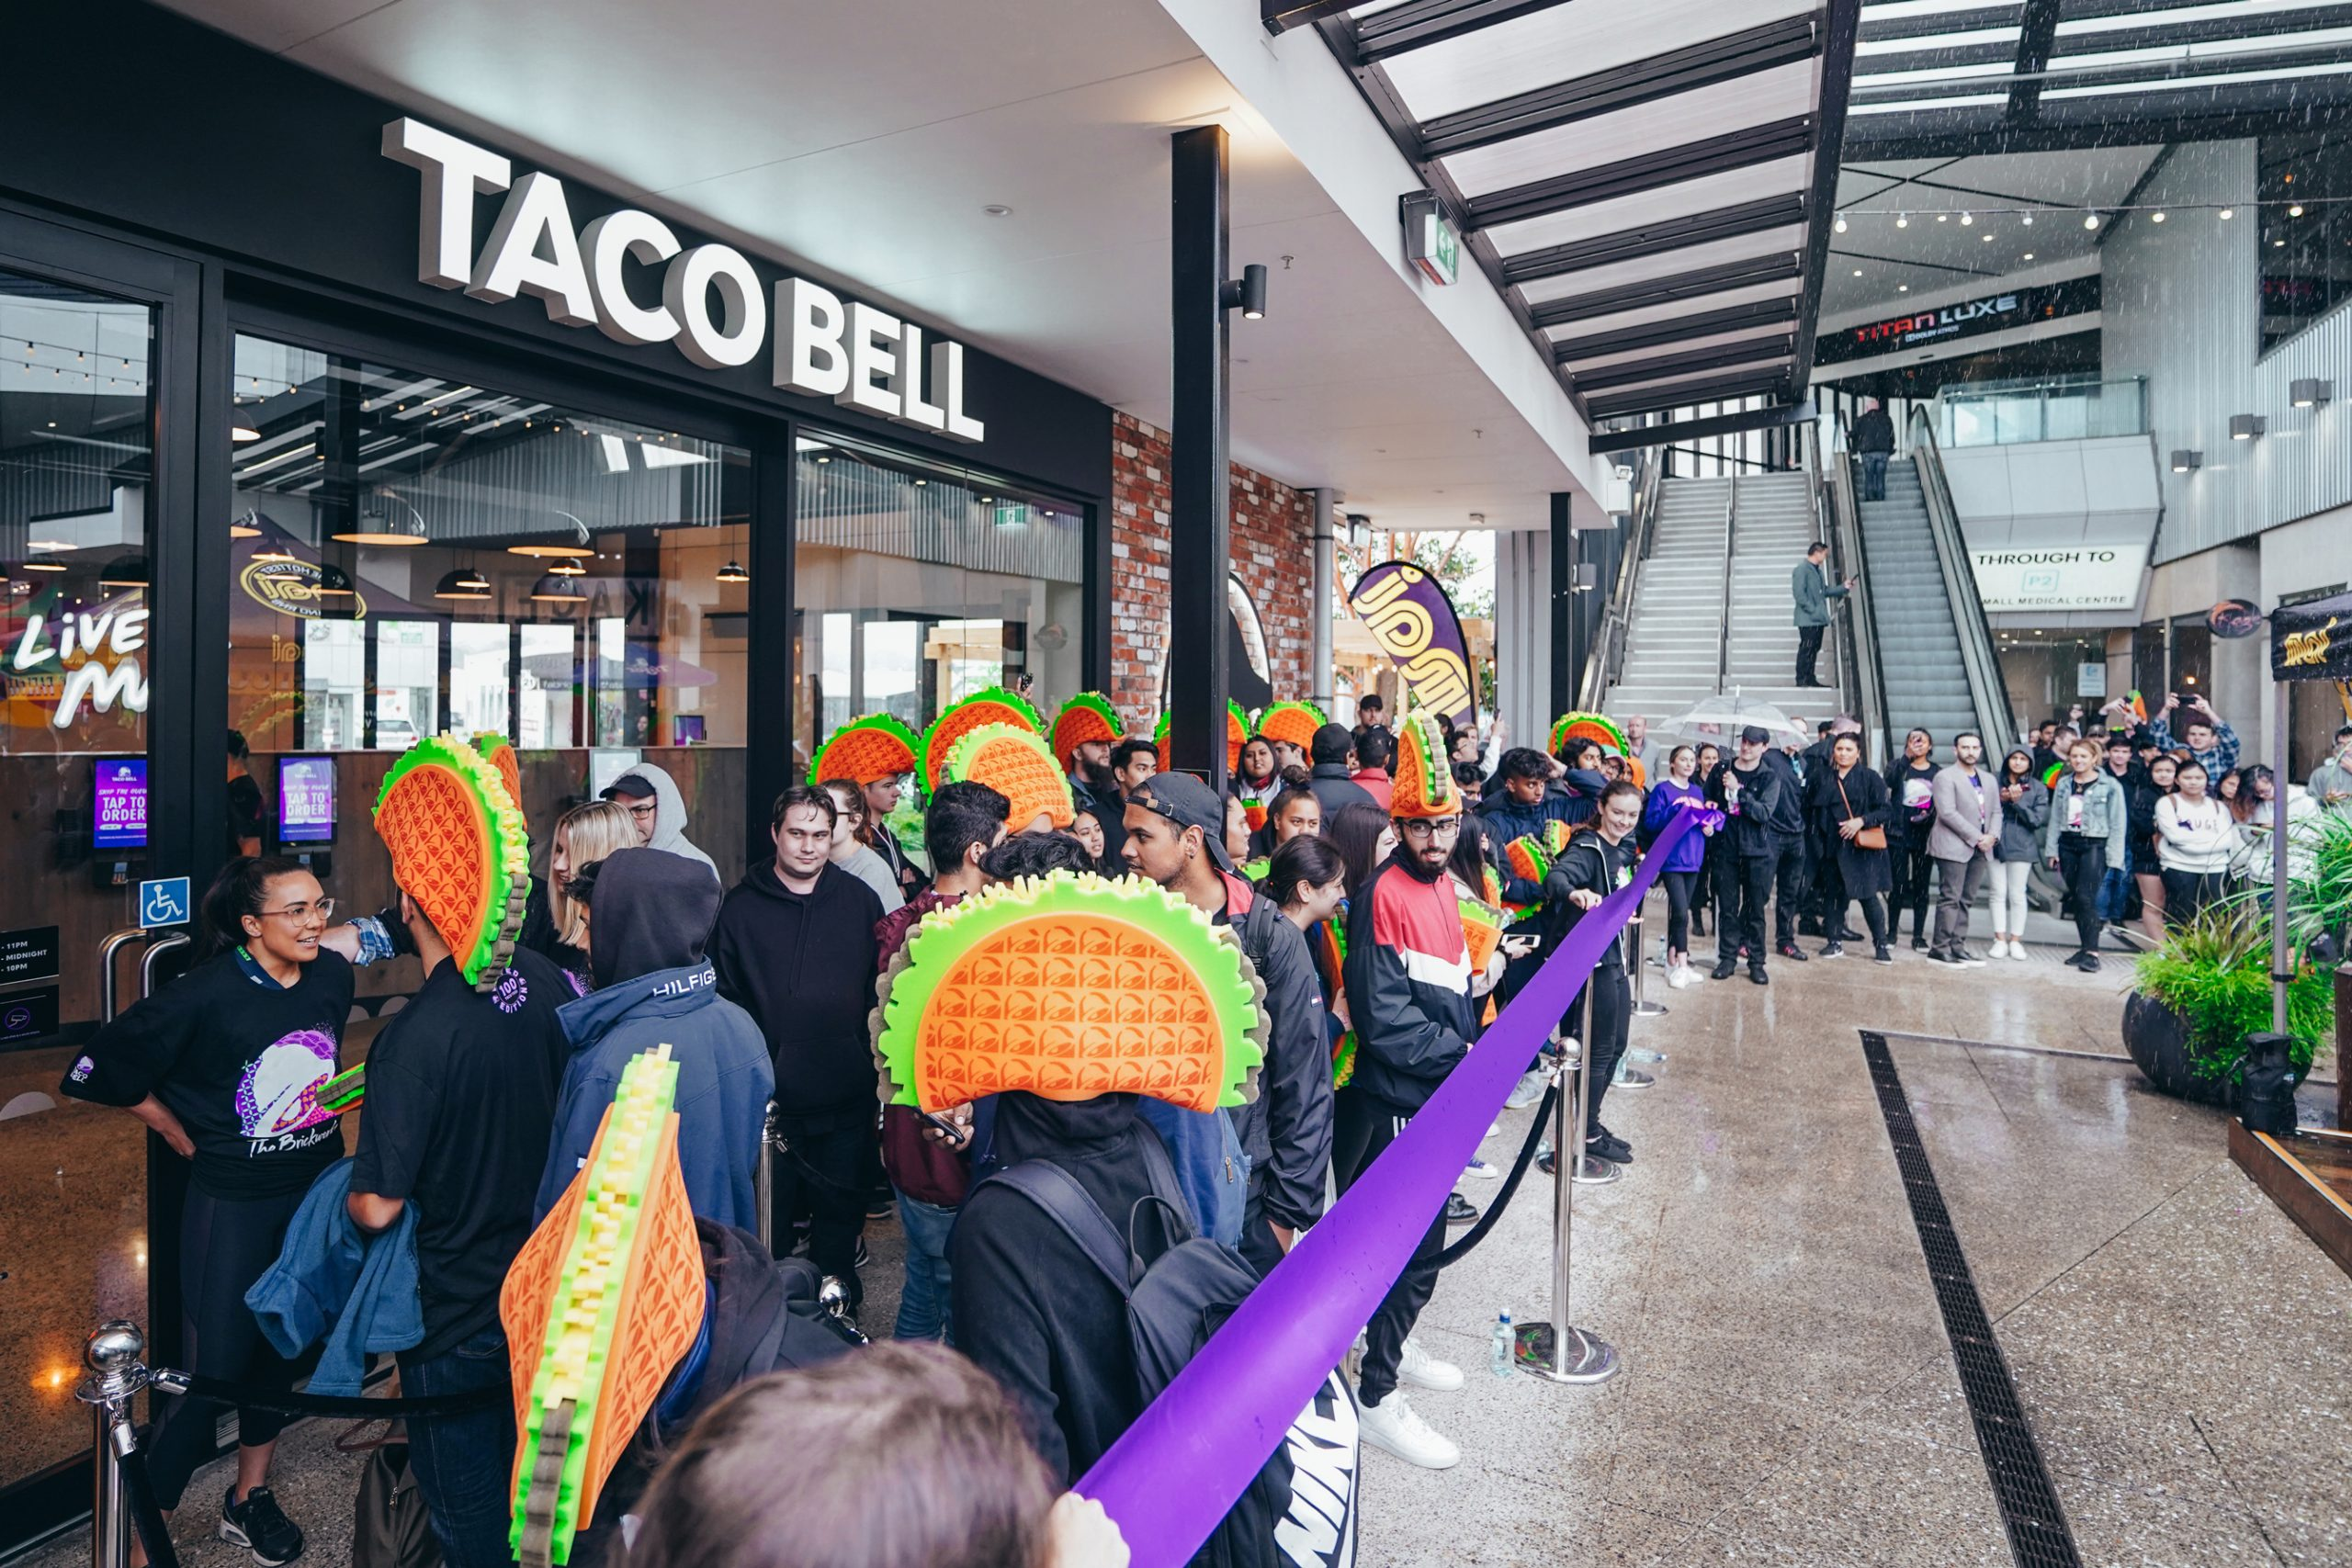 Customers lining up outside Taco Bell wearing brand merchandise